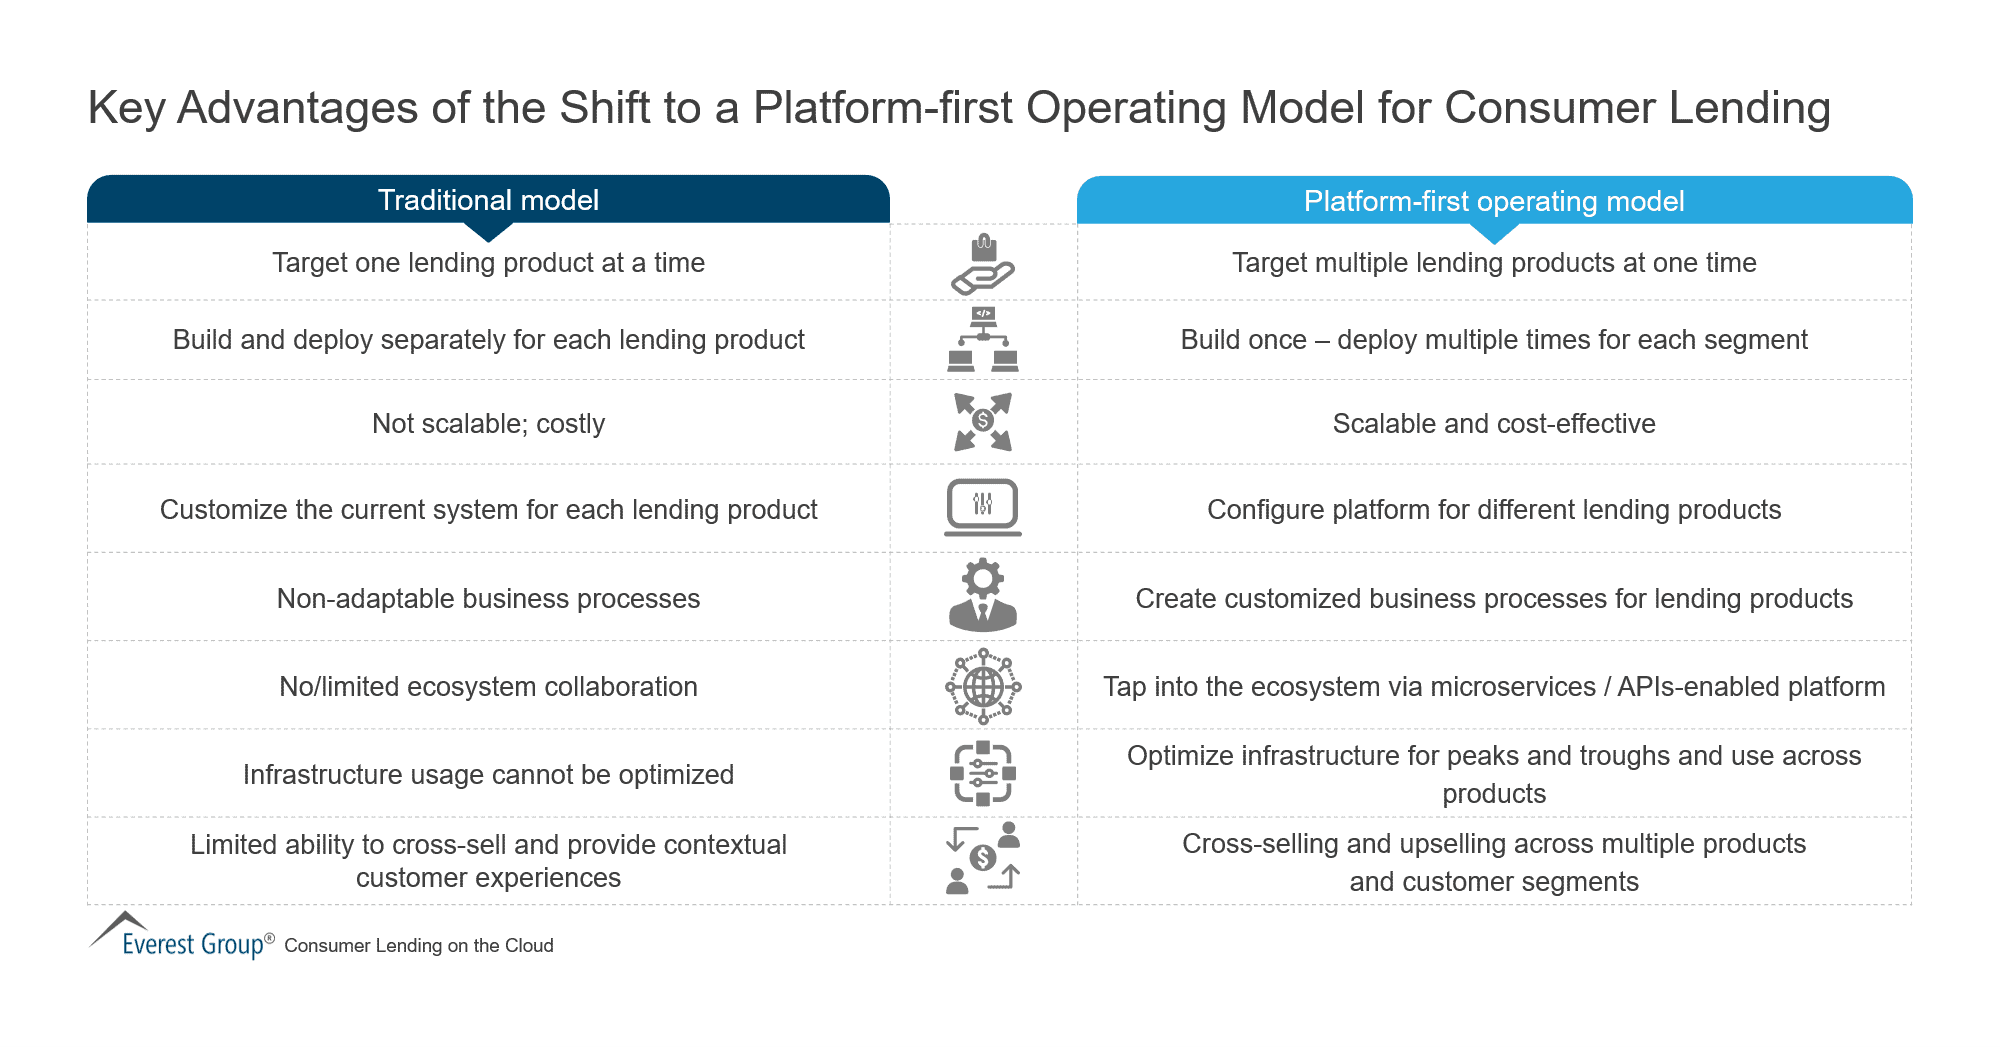 Key Advantages of the Shift to a Platform-first Operating Model for Consumer Lending